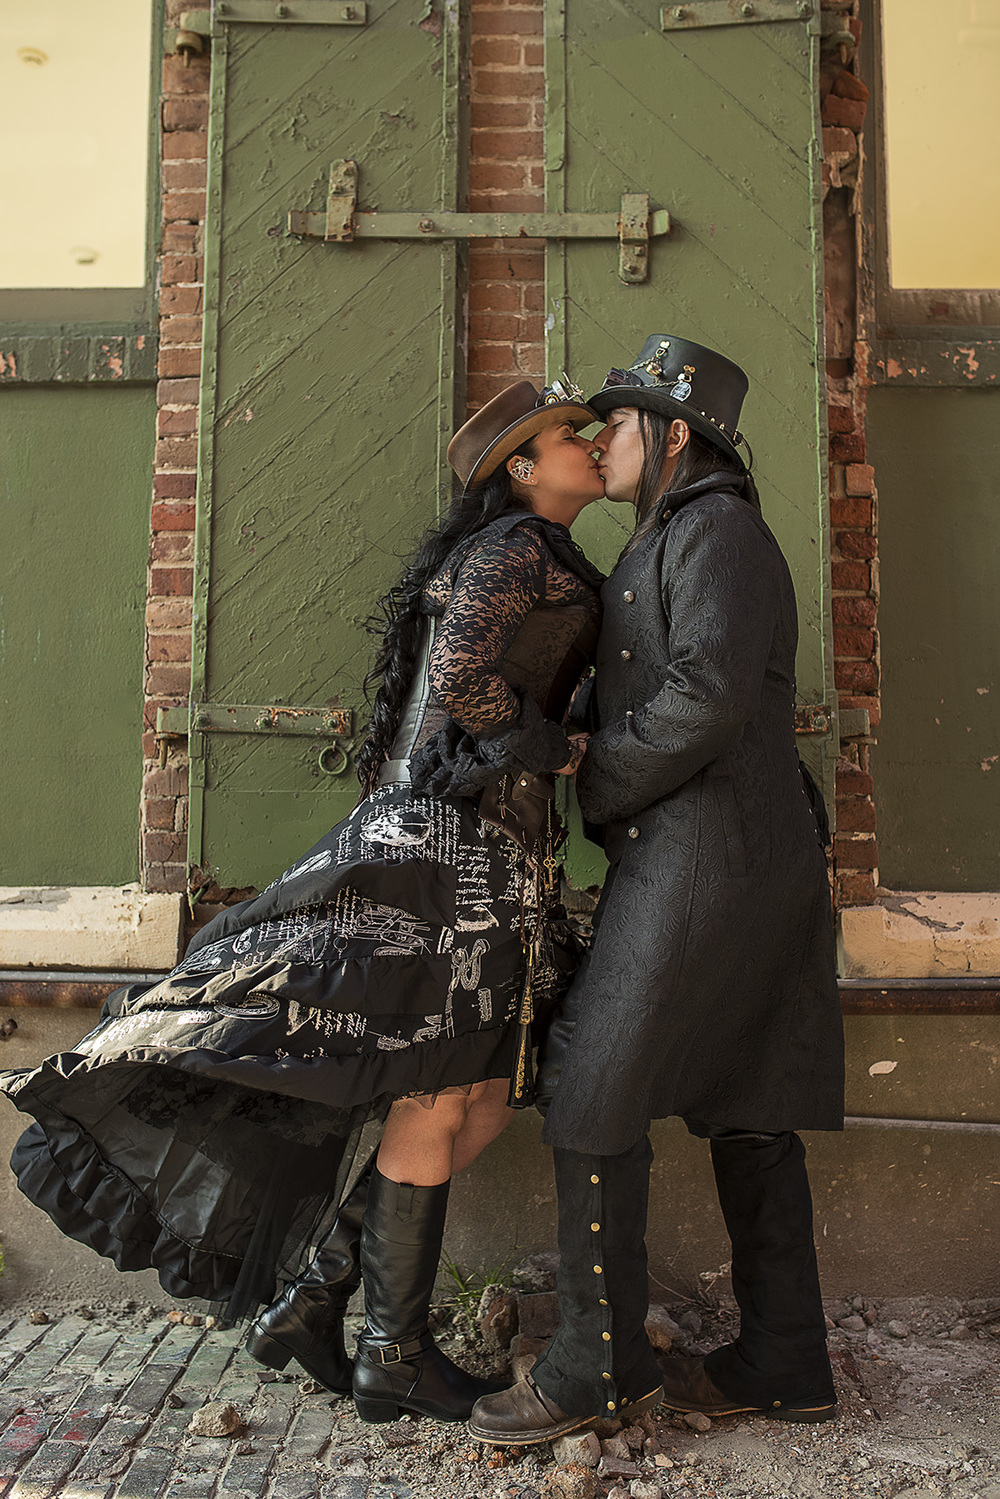 Galveston Steampunk engagement